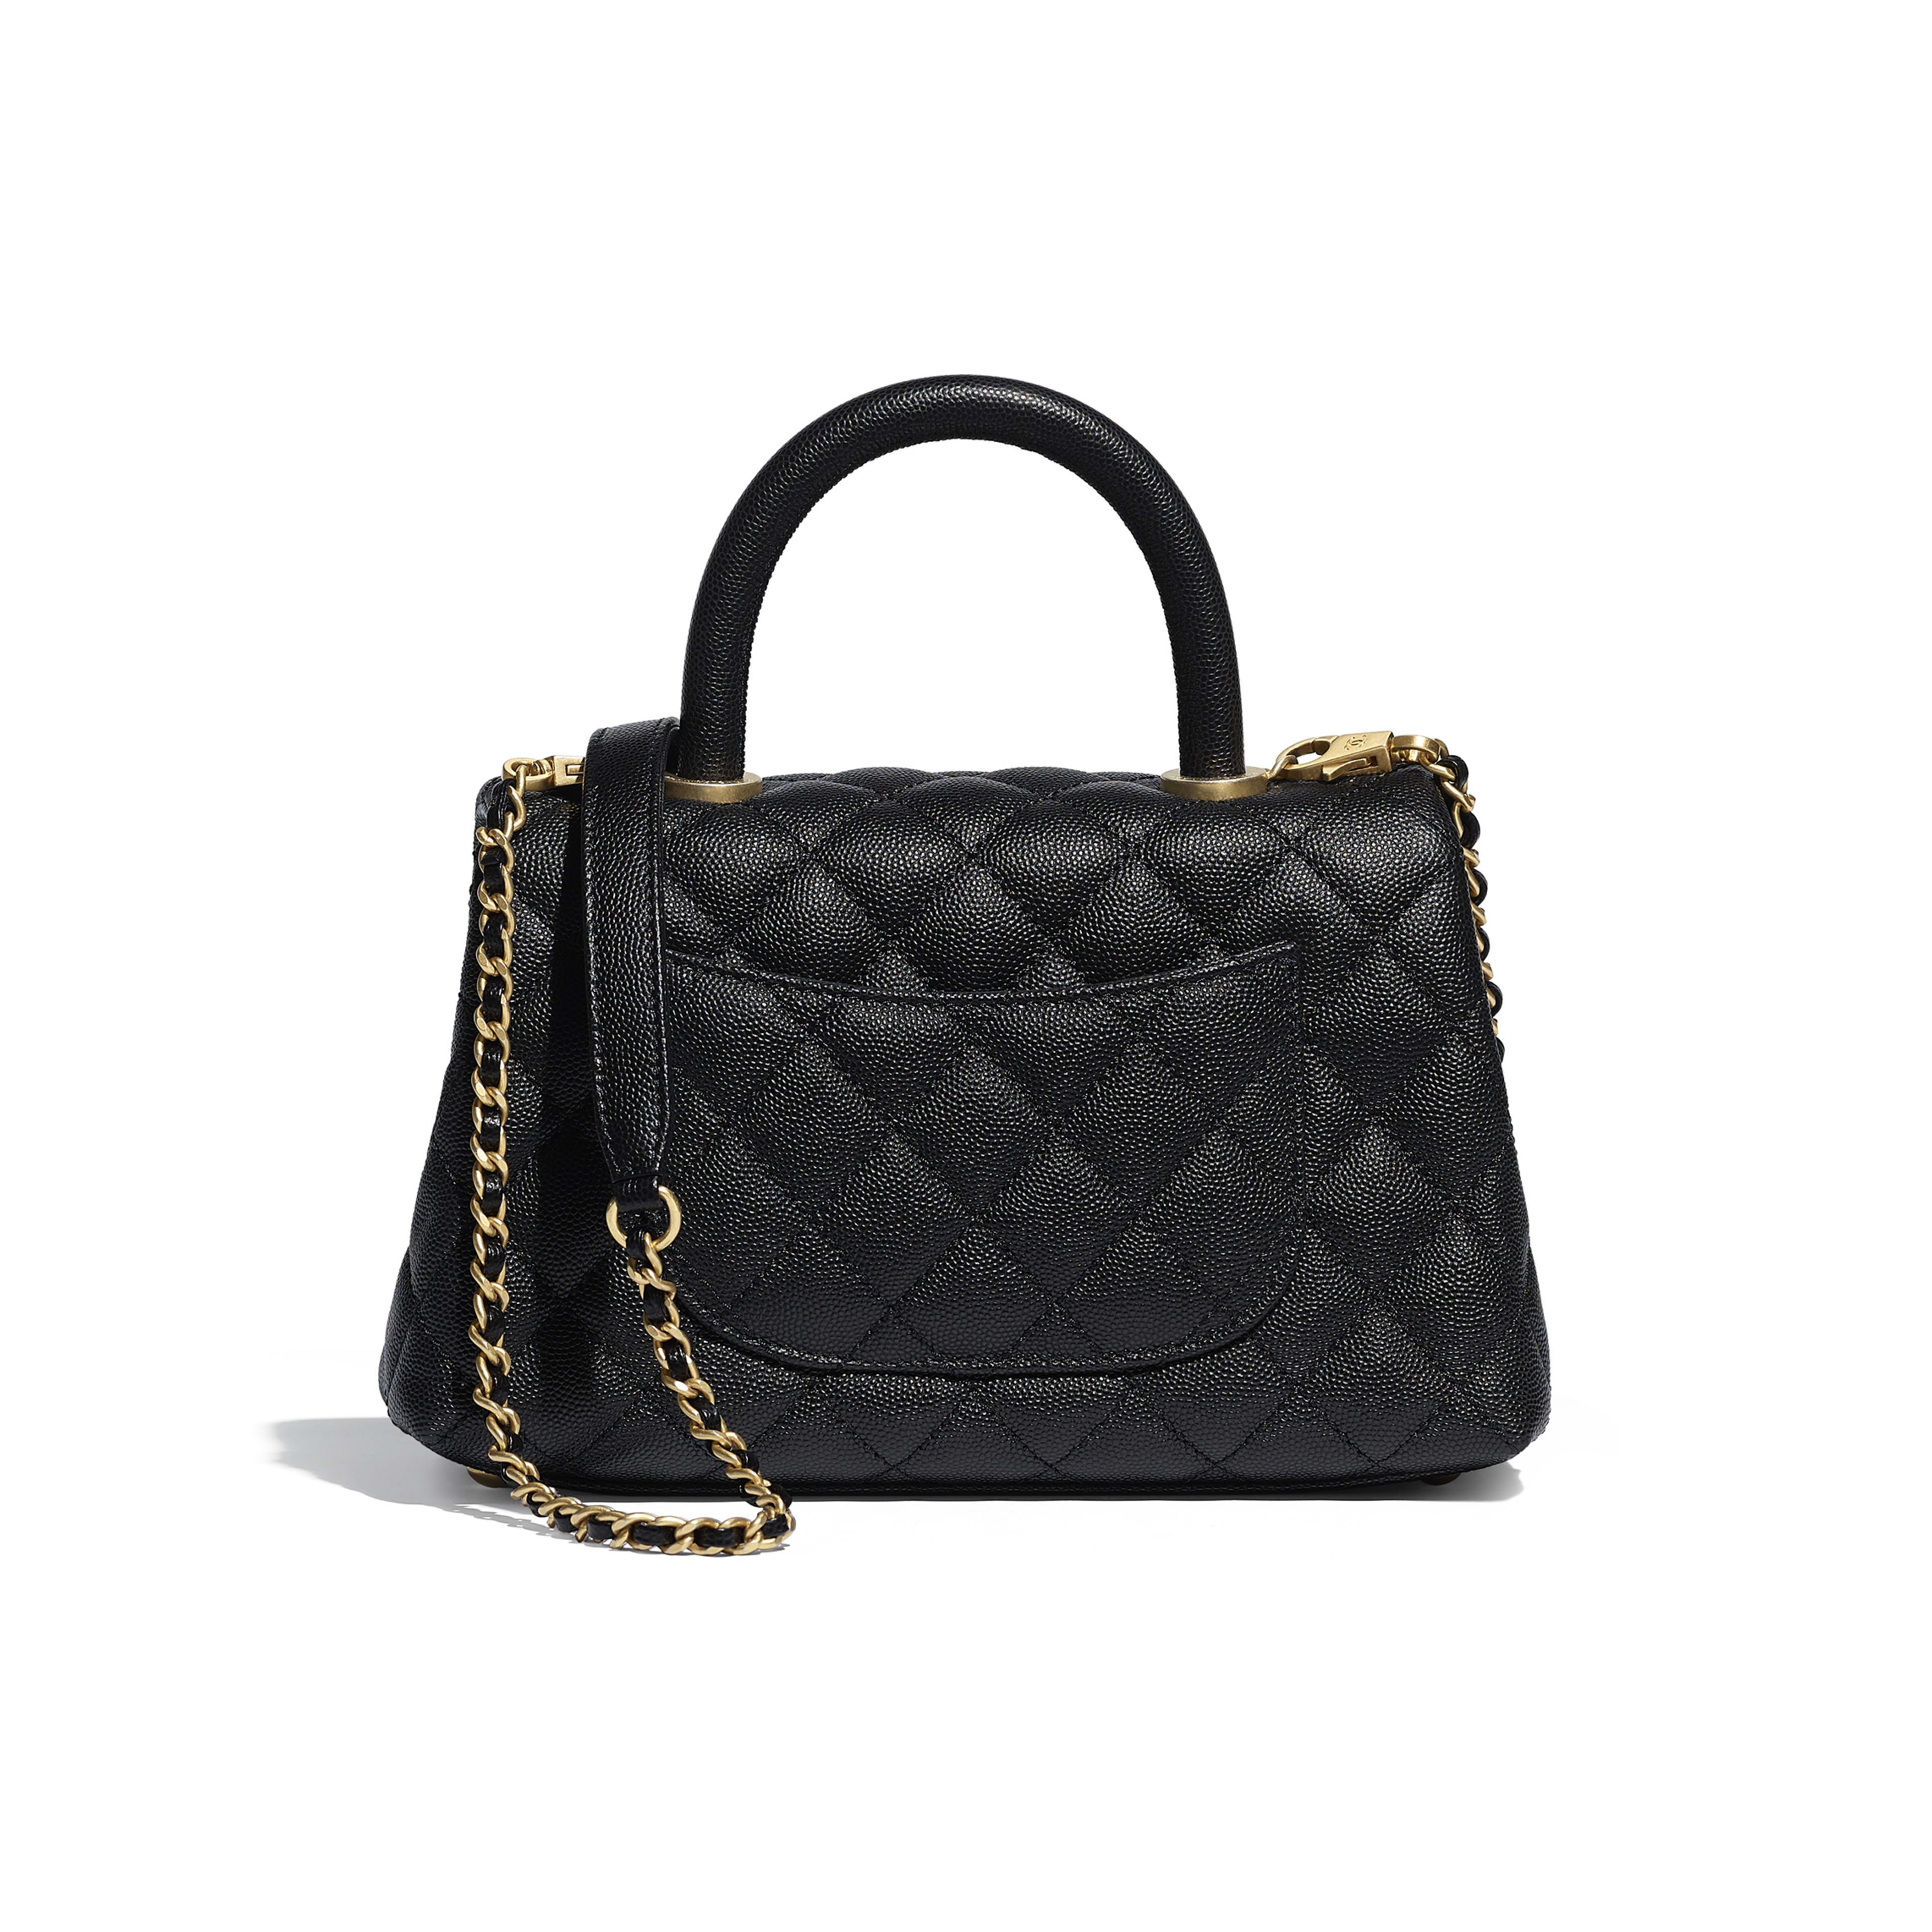 Small Flap Bag with Top Handle - Black - Grained Calfskin & Gold-Tone Metal - Alternative view - see full sized version